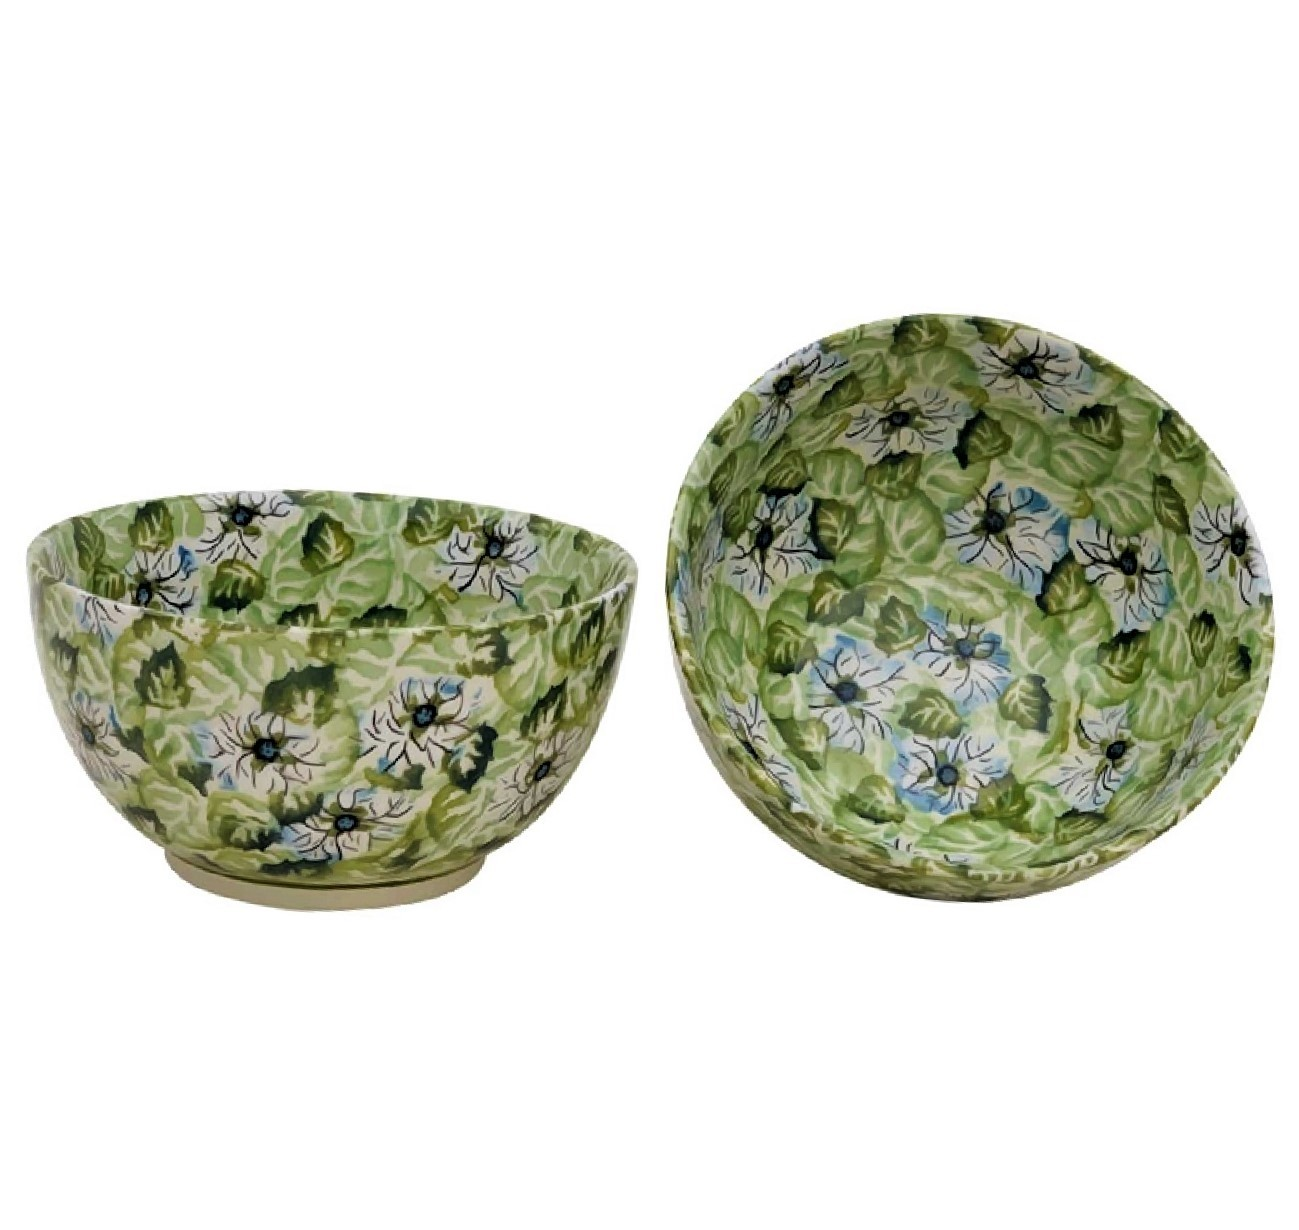 Pottery Avenue2-Cup Stoneware Cereal-Salad Bowl - 971-334AR Heavenly